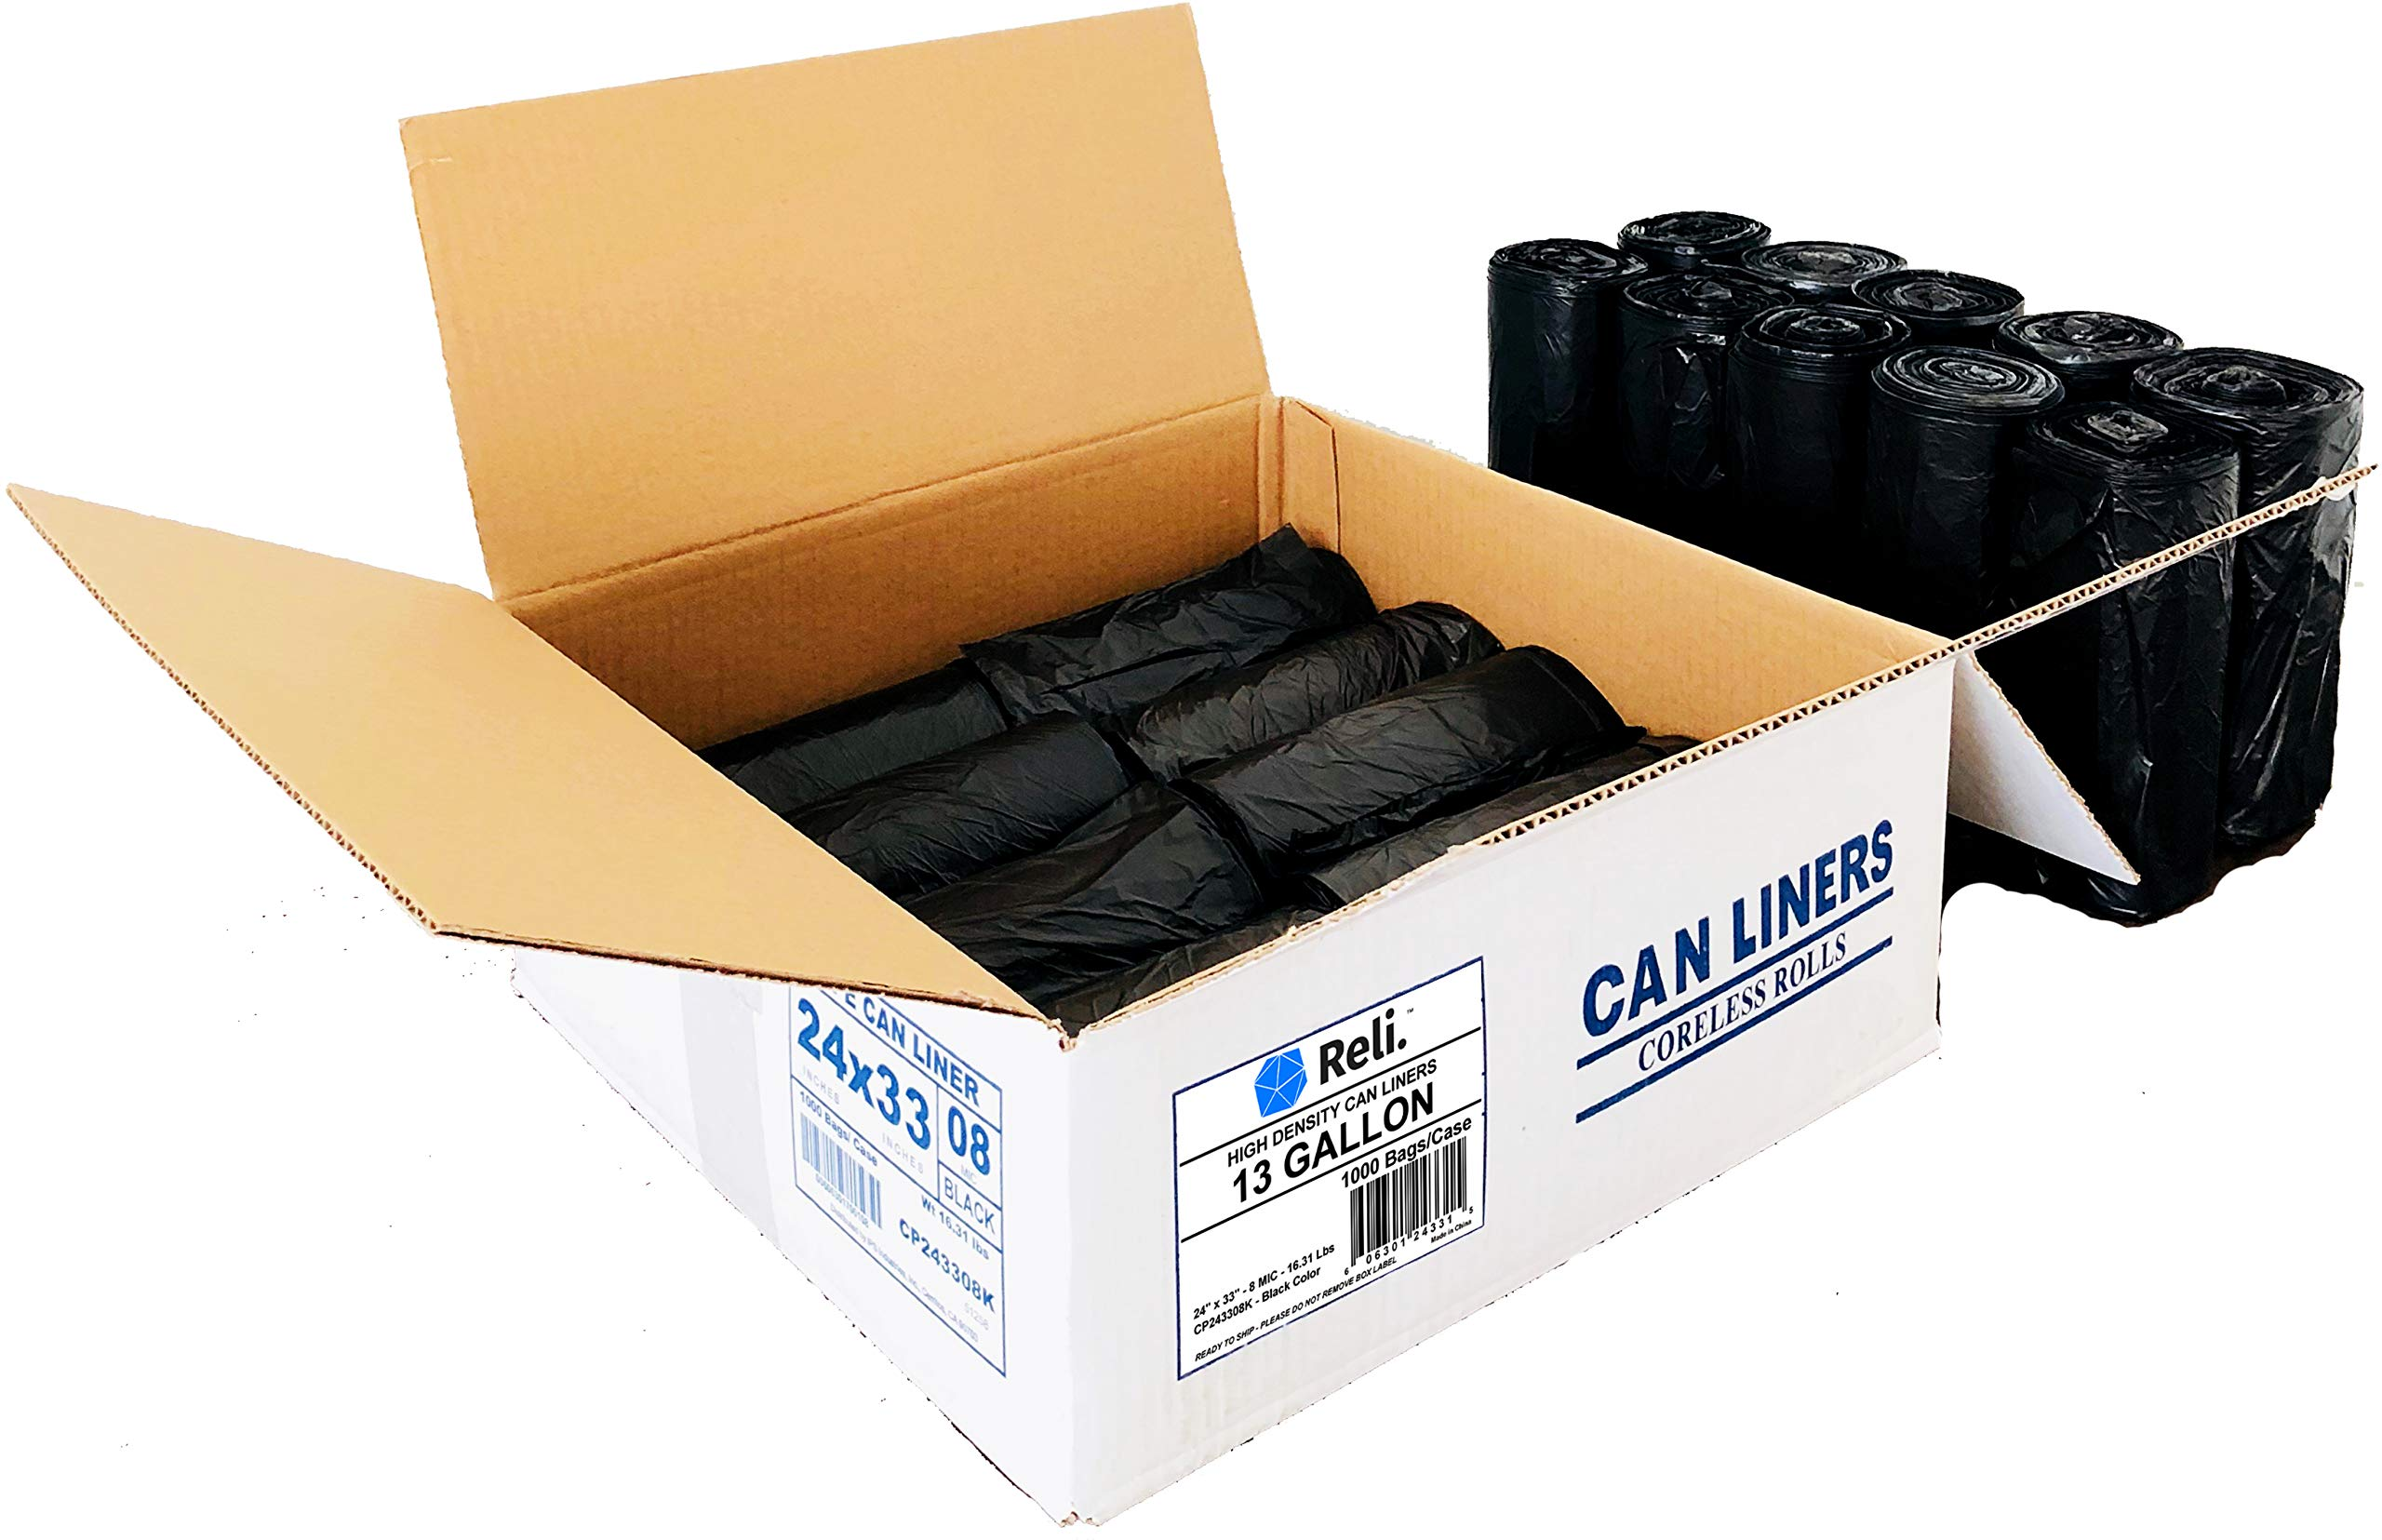 Reli. Trash Bags, 13 Gallon (Wholesale 1000 Count) (Black) - Can Liners, Garbage Bags with 13 Gallon (13 Gal) to 16 Gallon (16 Gal) Capacity by Reli. (Image #2)